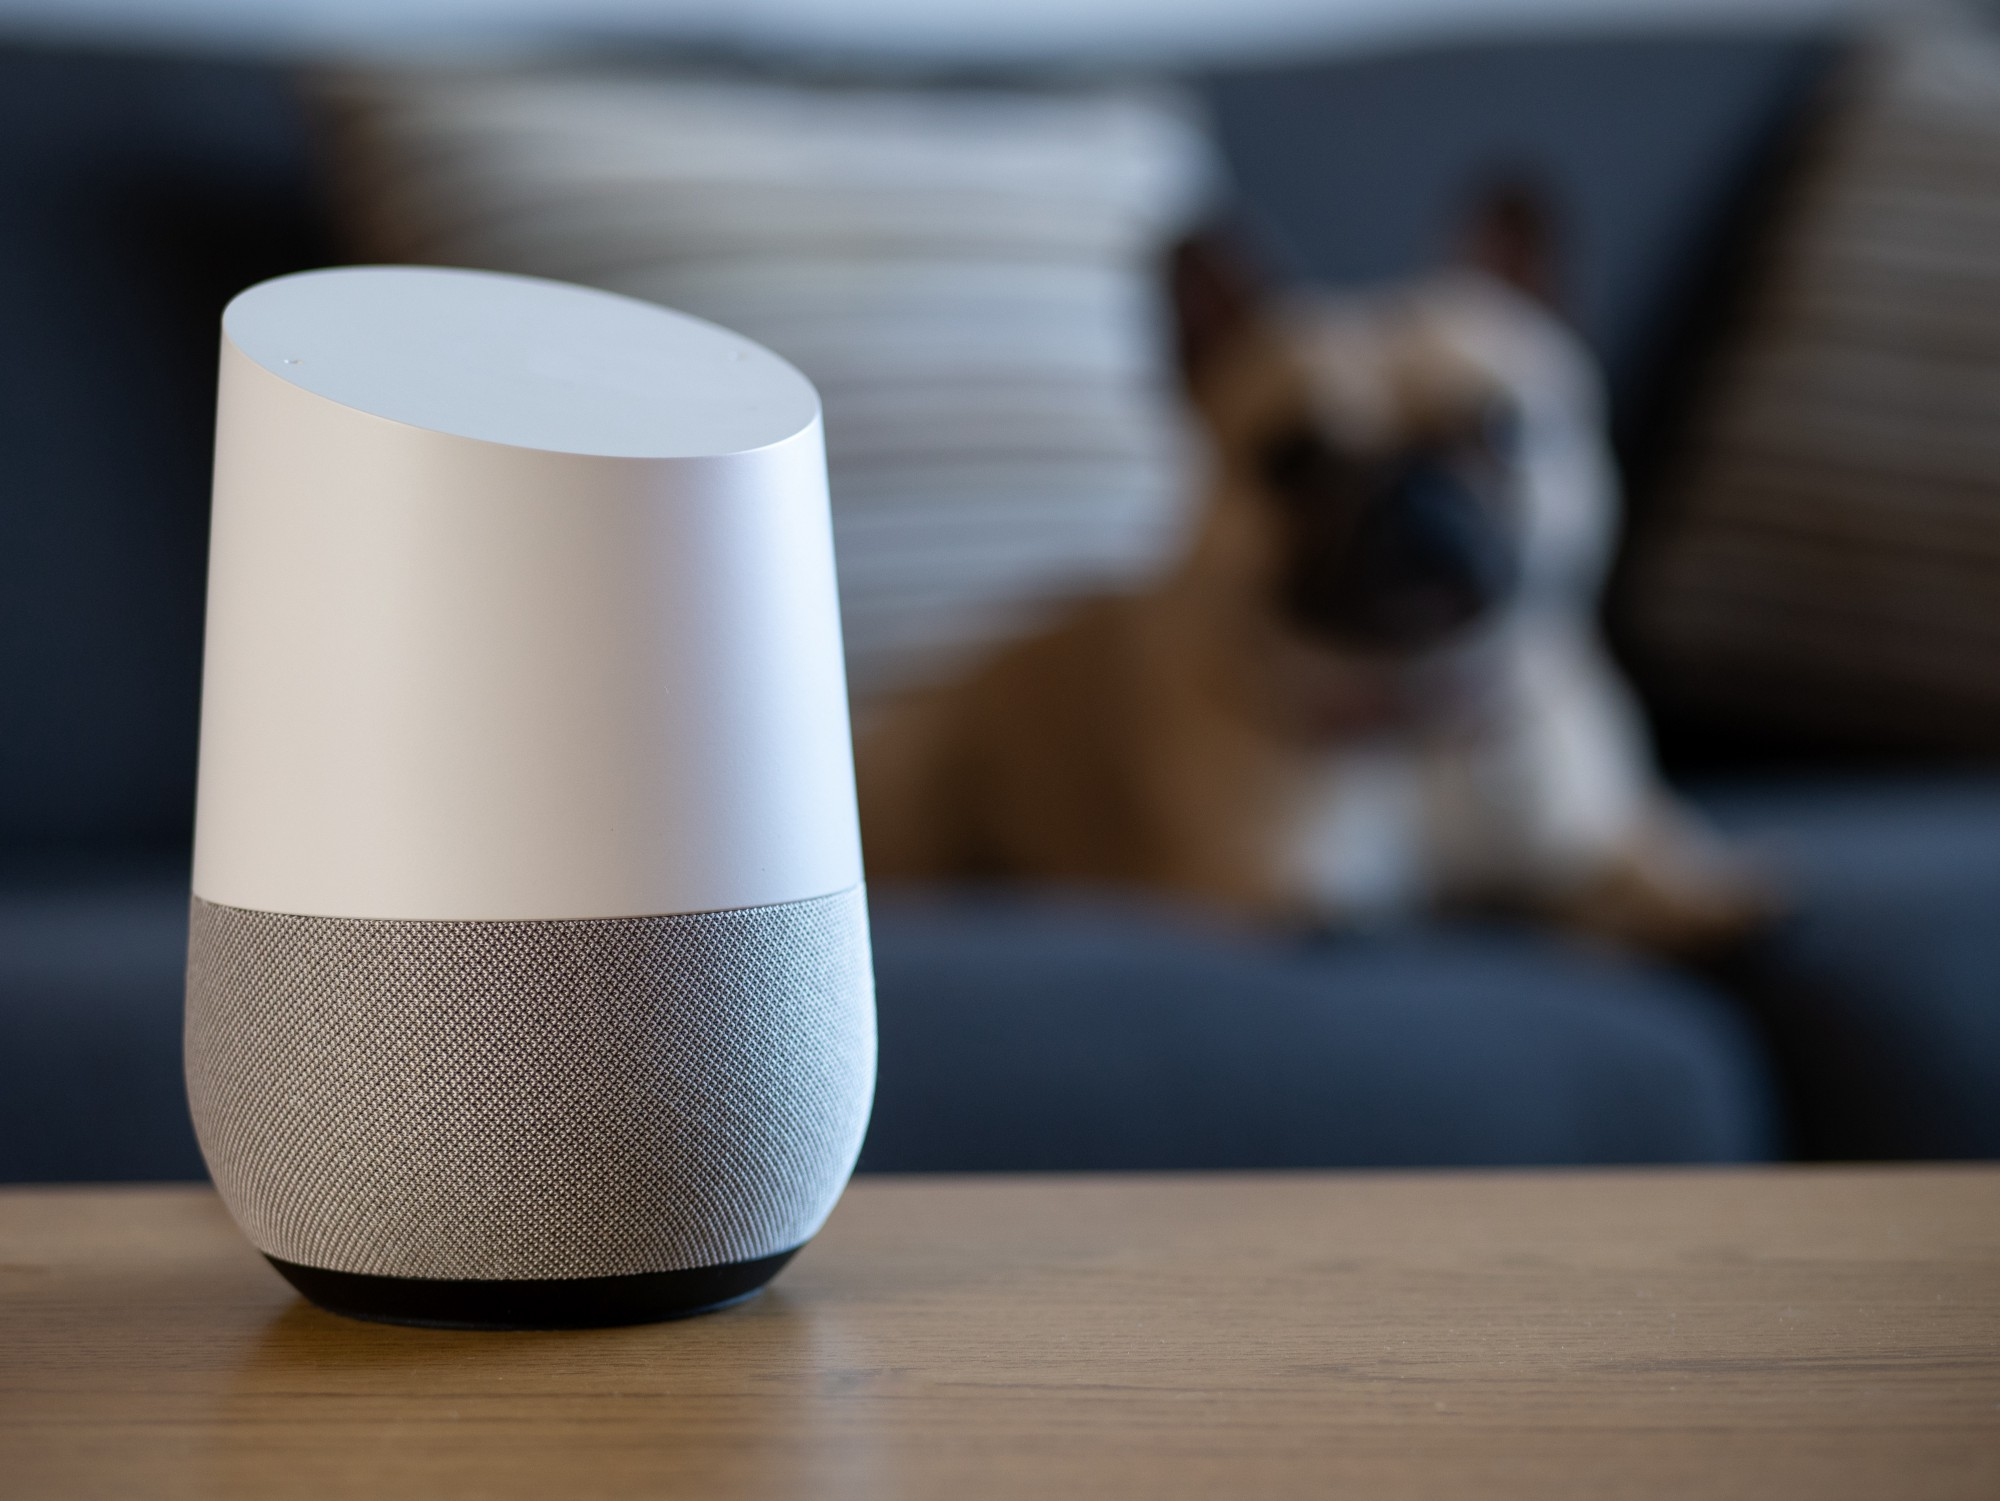 Smart speaker sits on a coffee table while a dog stares at it from the couch in the background.